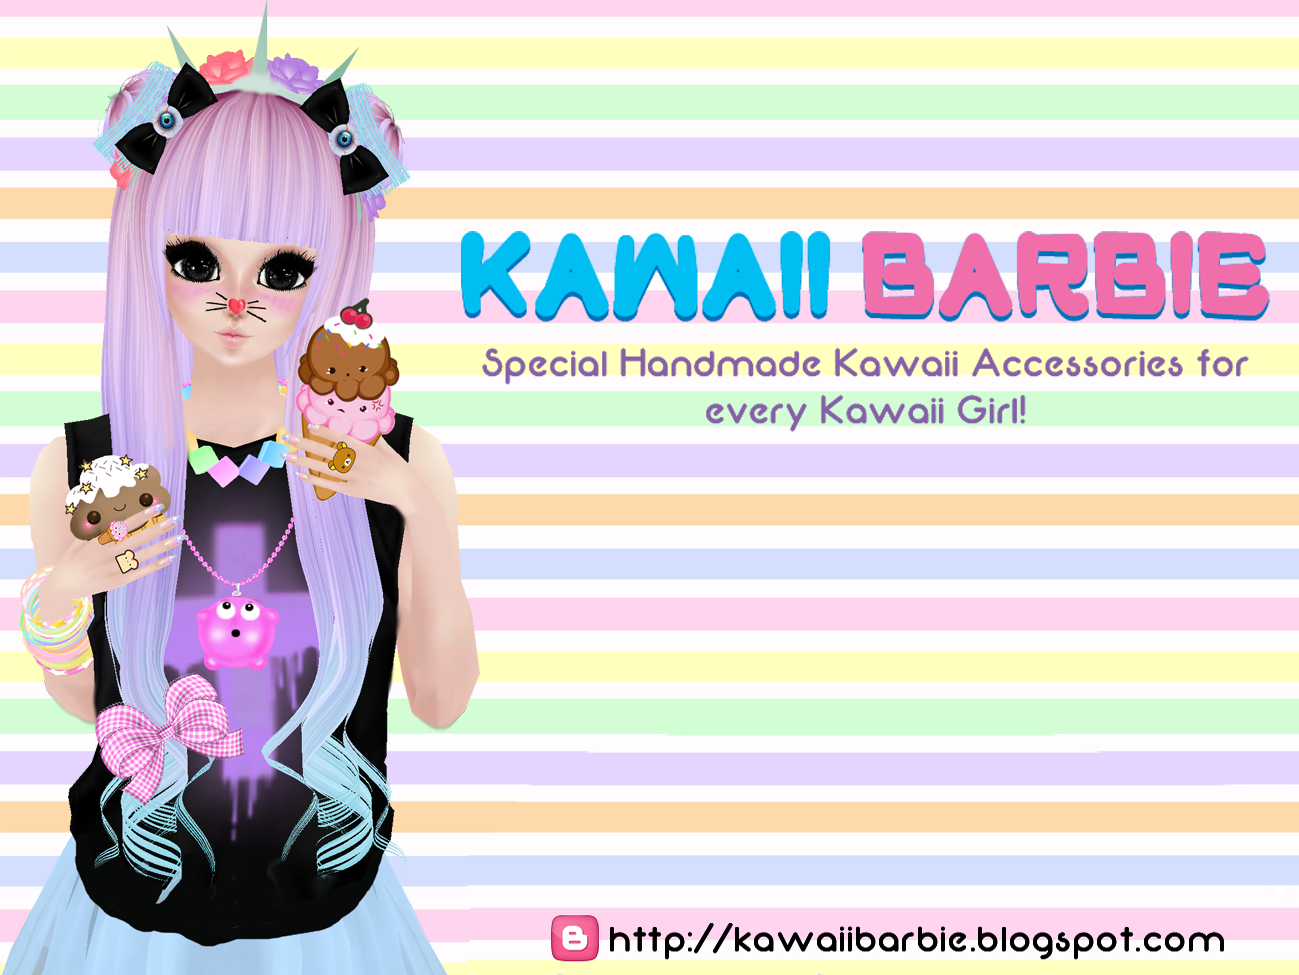 Kawaii Barbie